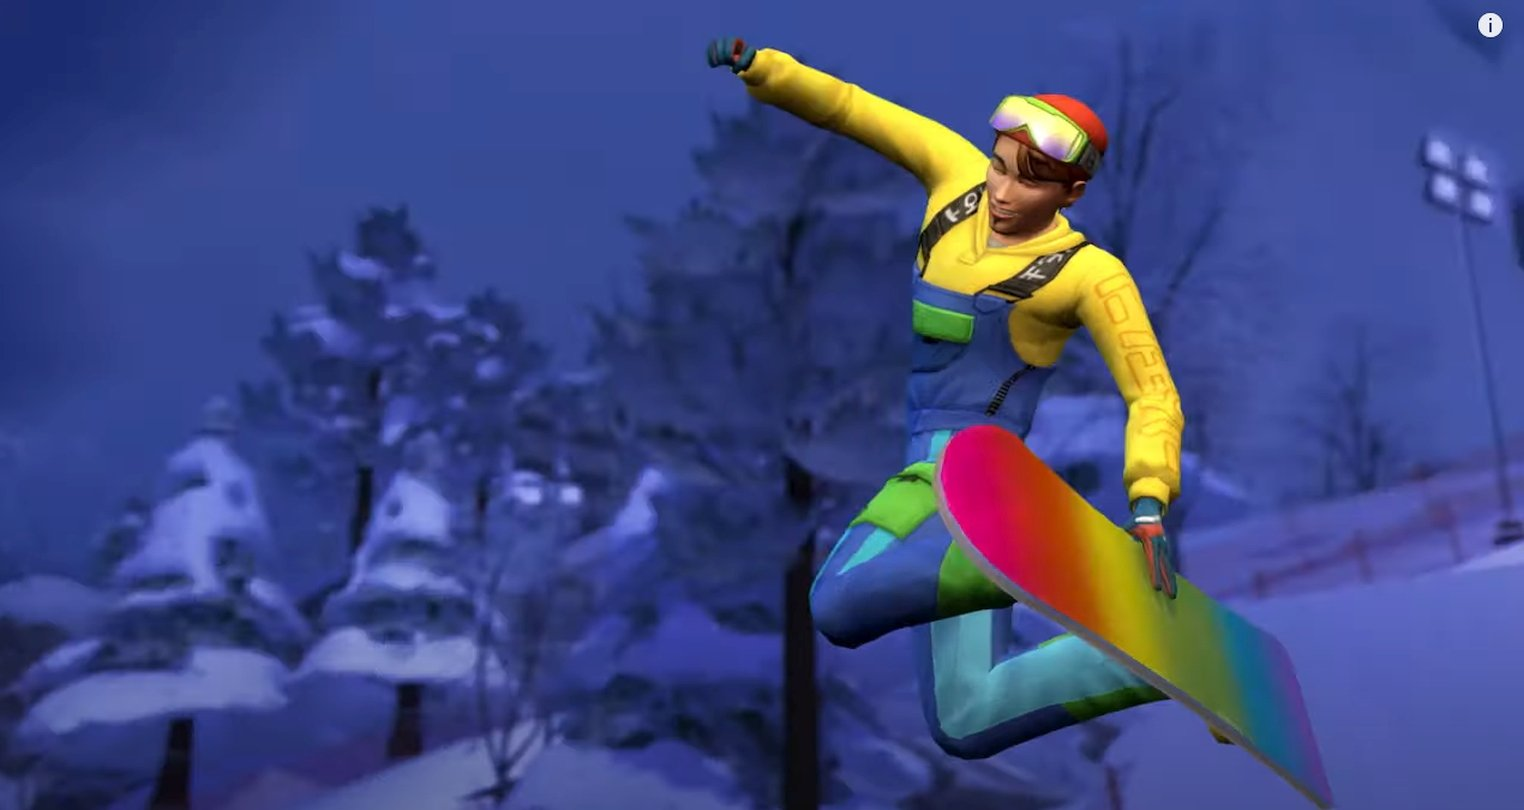 The Sims 4: Snowy Escape Livestream Reveals More Information Ahead Of Its Release